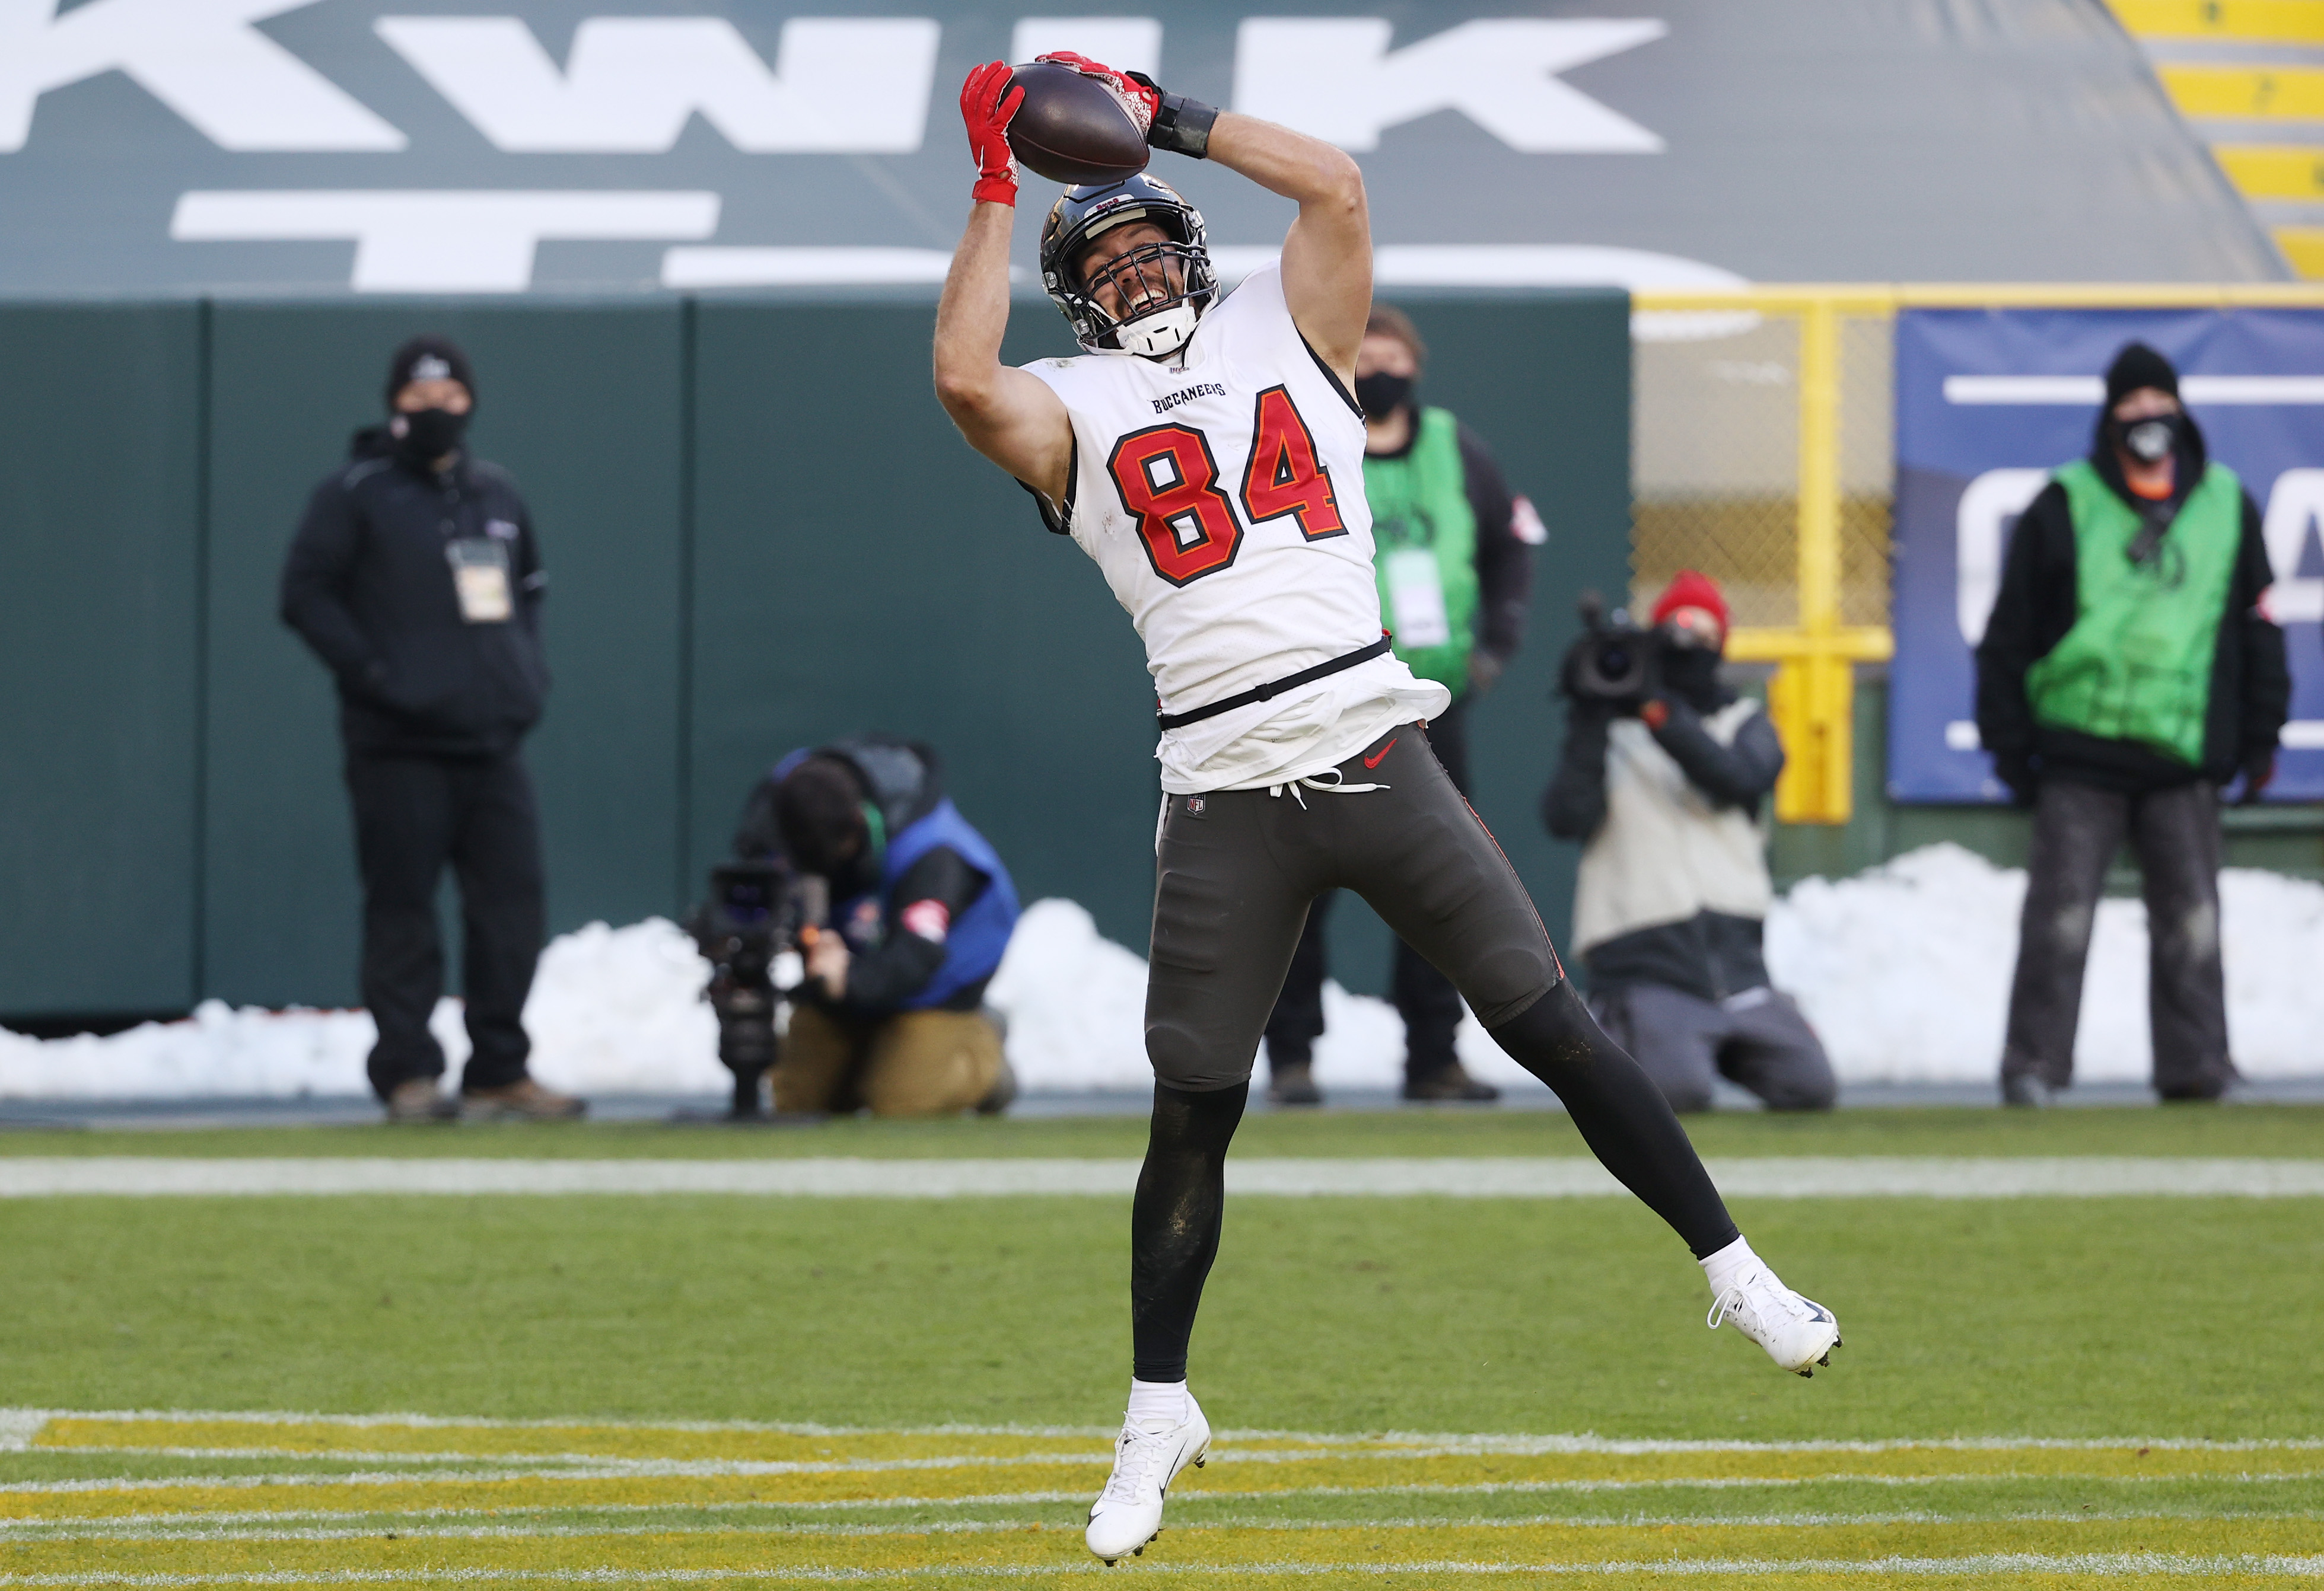 Cameron Brate #84 of the Tampa Bay Buccaneers scores a touchdown in the third quarter against the Green Bay Packers during the NFC Championship game at Lambeau Field on January 24, 2021 in Green Bay, Wisconsin.